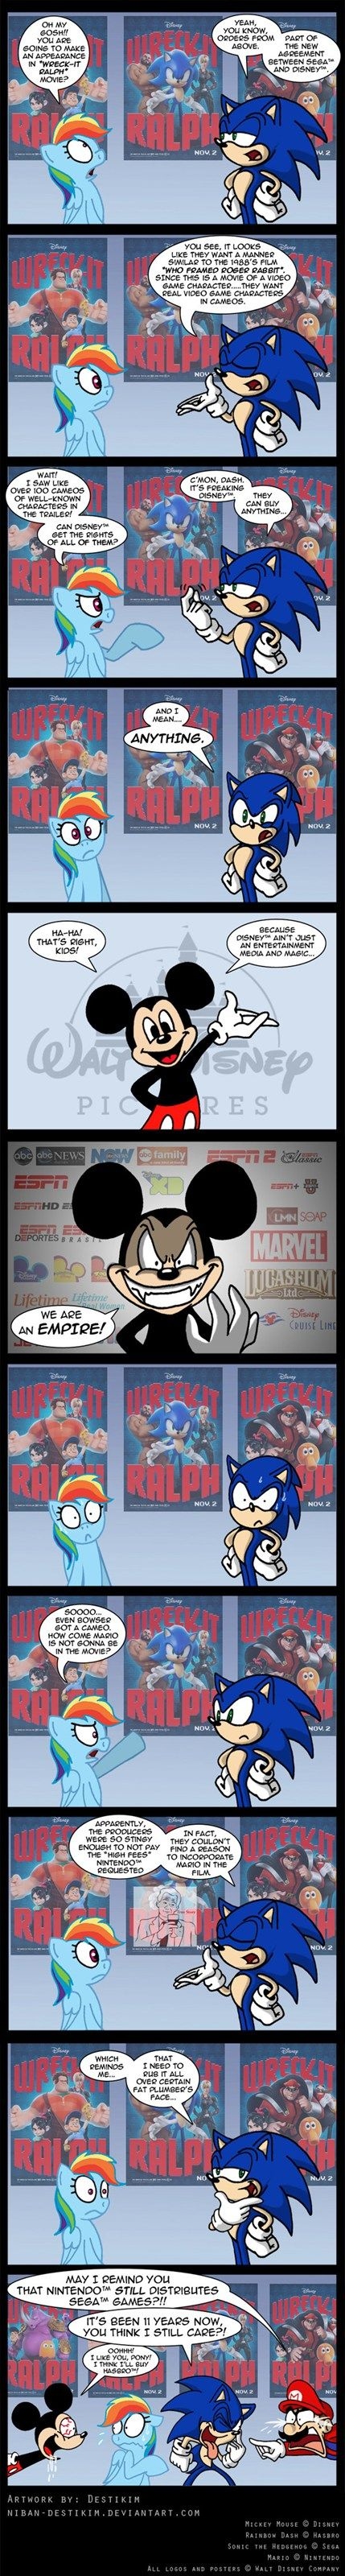 Sonic explains why he gets to be in Wreck it Ralph. DISNEY IS AN EMPIRE Hahaha!!!